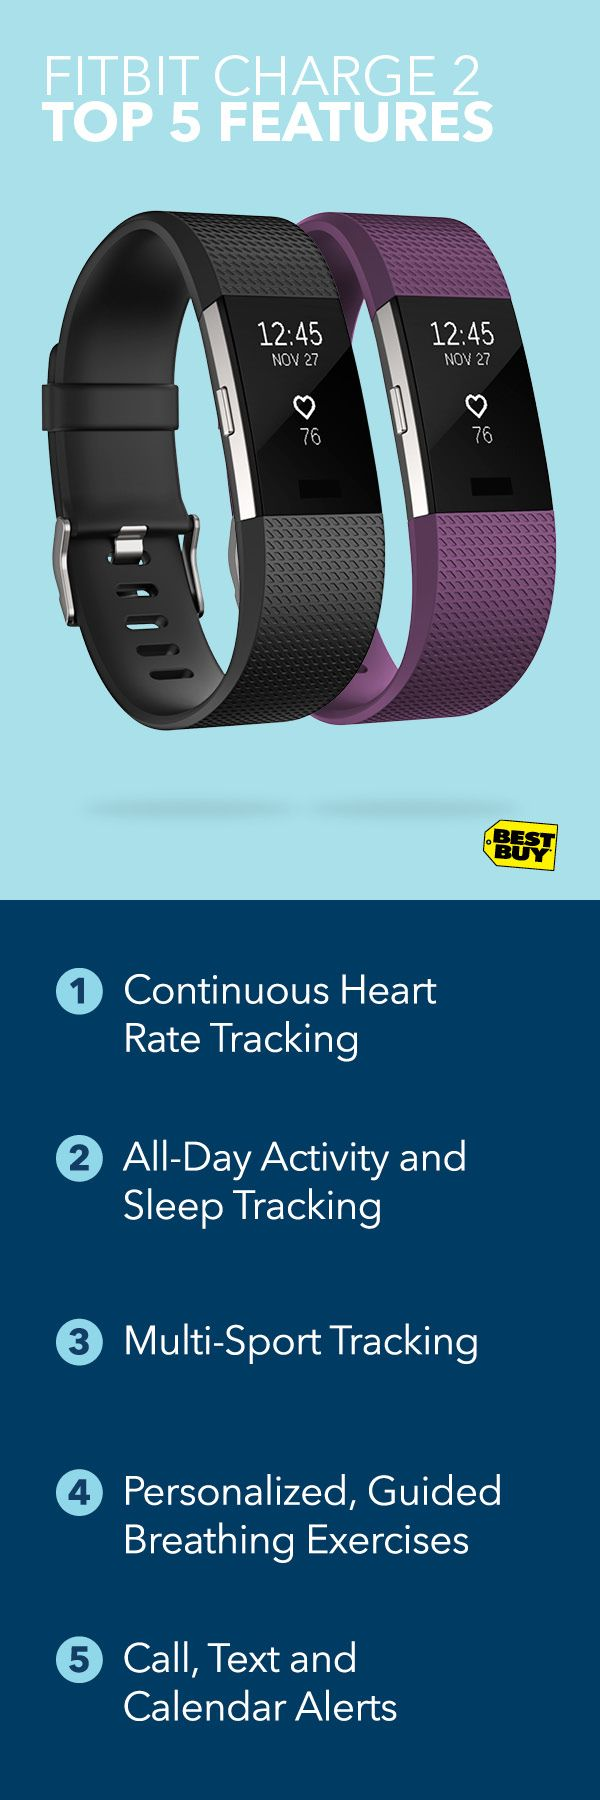 Whether you're running, biking or at the gym, you can push your fitness to the next level with the new Fitbit Charge 2. The larger display lets you take in stats mid-workout without slowing down. Hitting the weights or pounding pavement, the Charge 2 tracks heart rate, monitors your sleep and features on-device breathing exercises. Find it at Best Buy today.